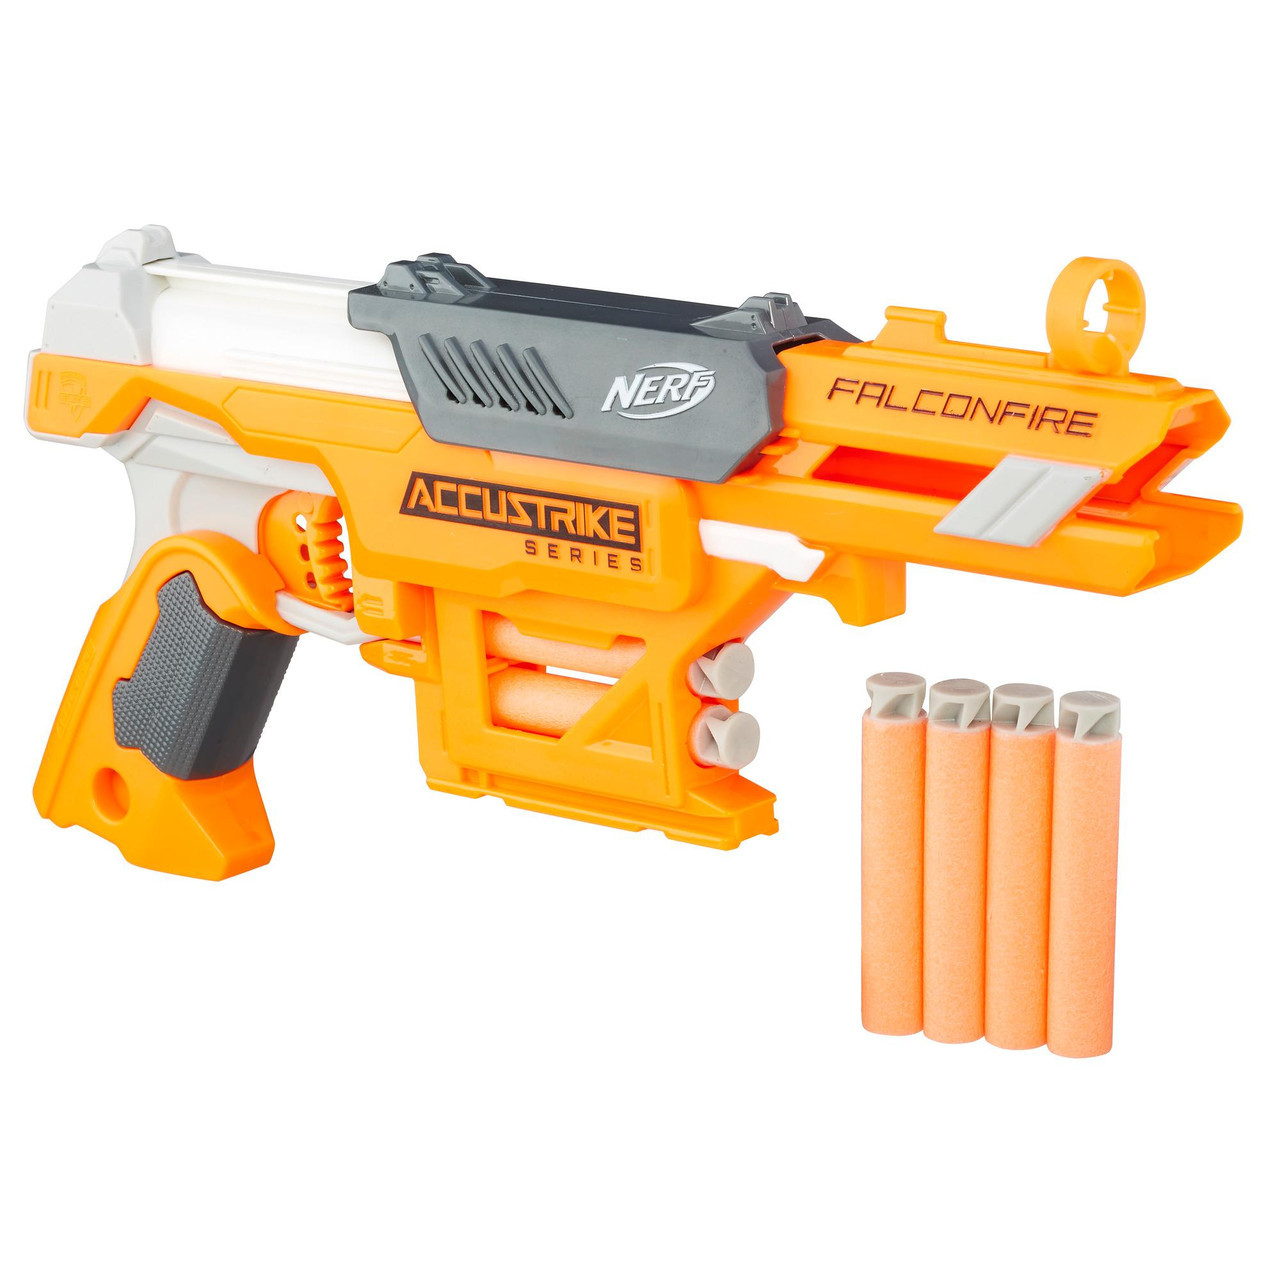 "Hasbro Nerf AccuStrike Бластер ""Фалконфайр"" (Falconfire)"